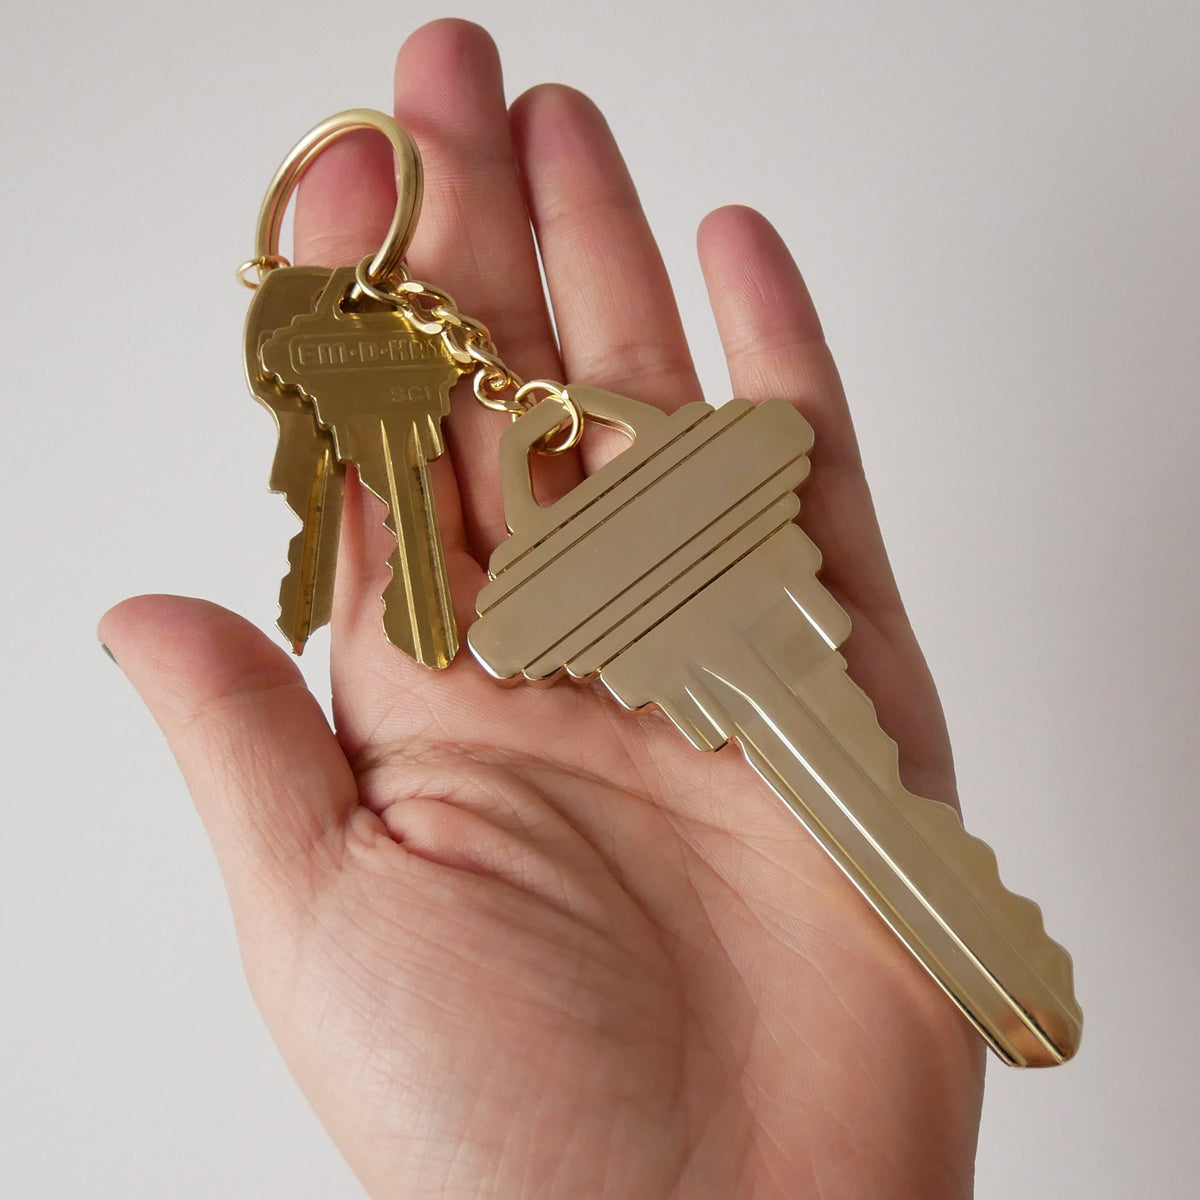 Studio Cult Key Key Chain Chain oversized key in hand